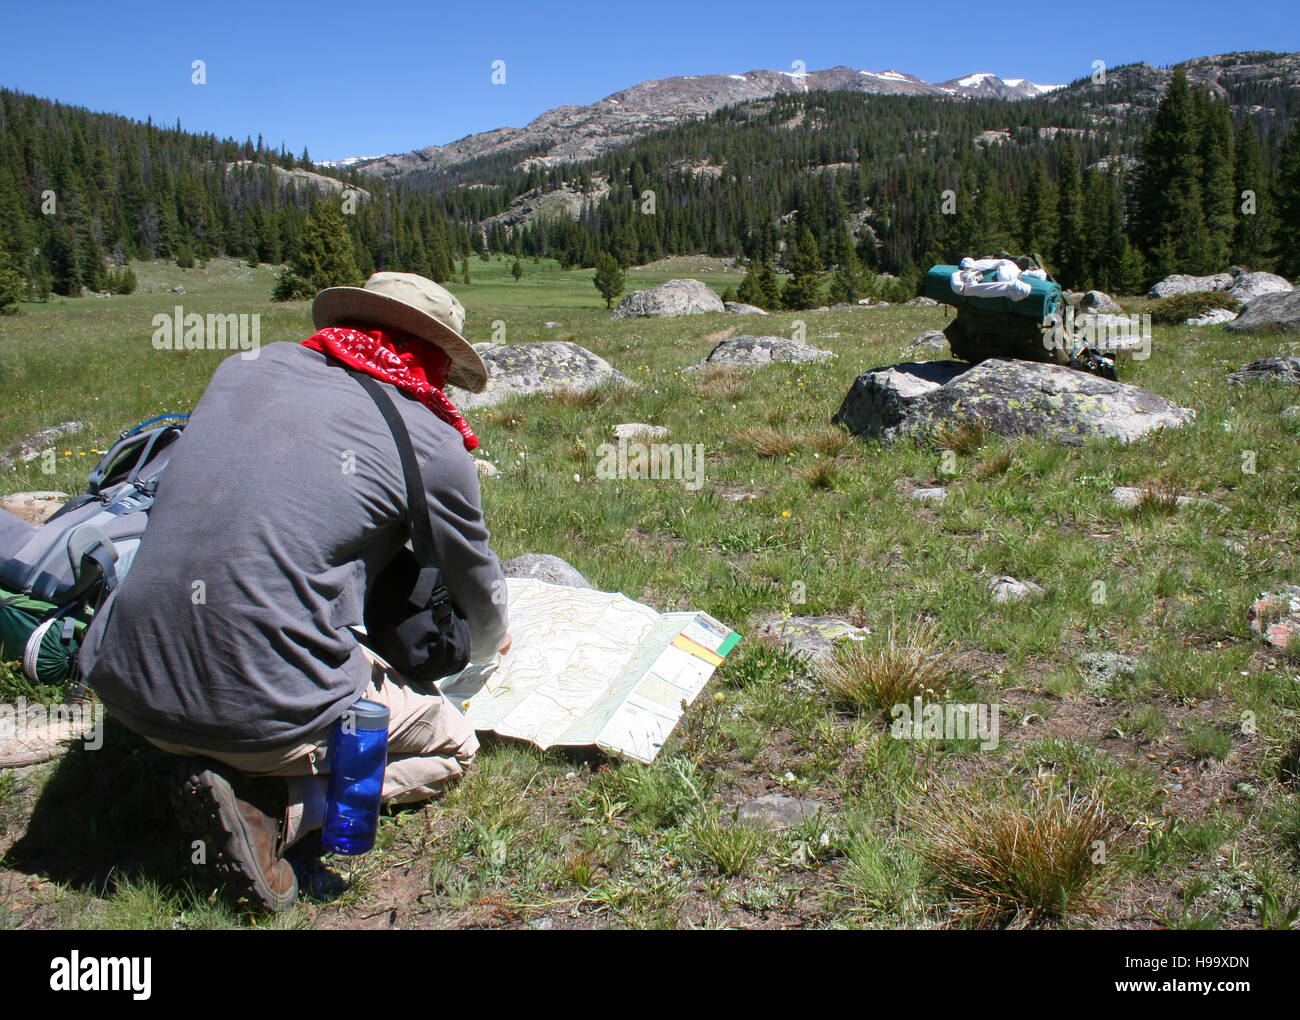 A hiker consults the map to navigate rugged mountain terrain. - Stock Image